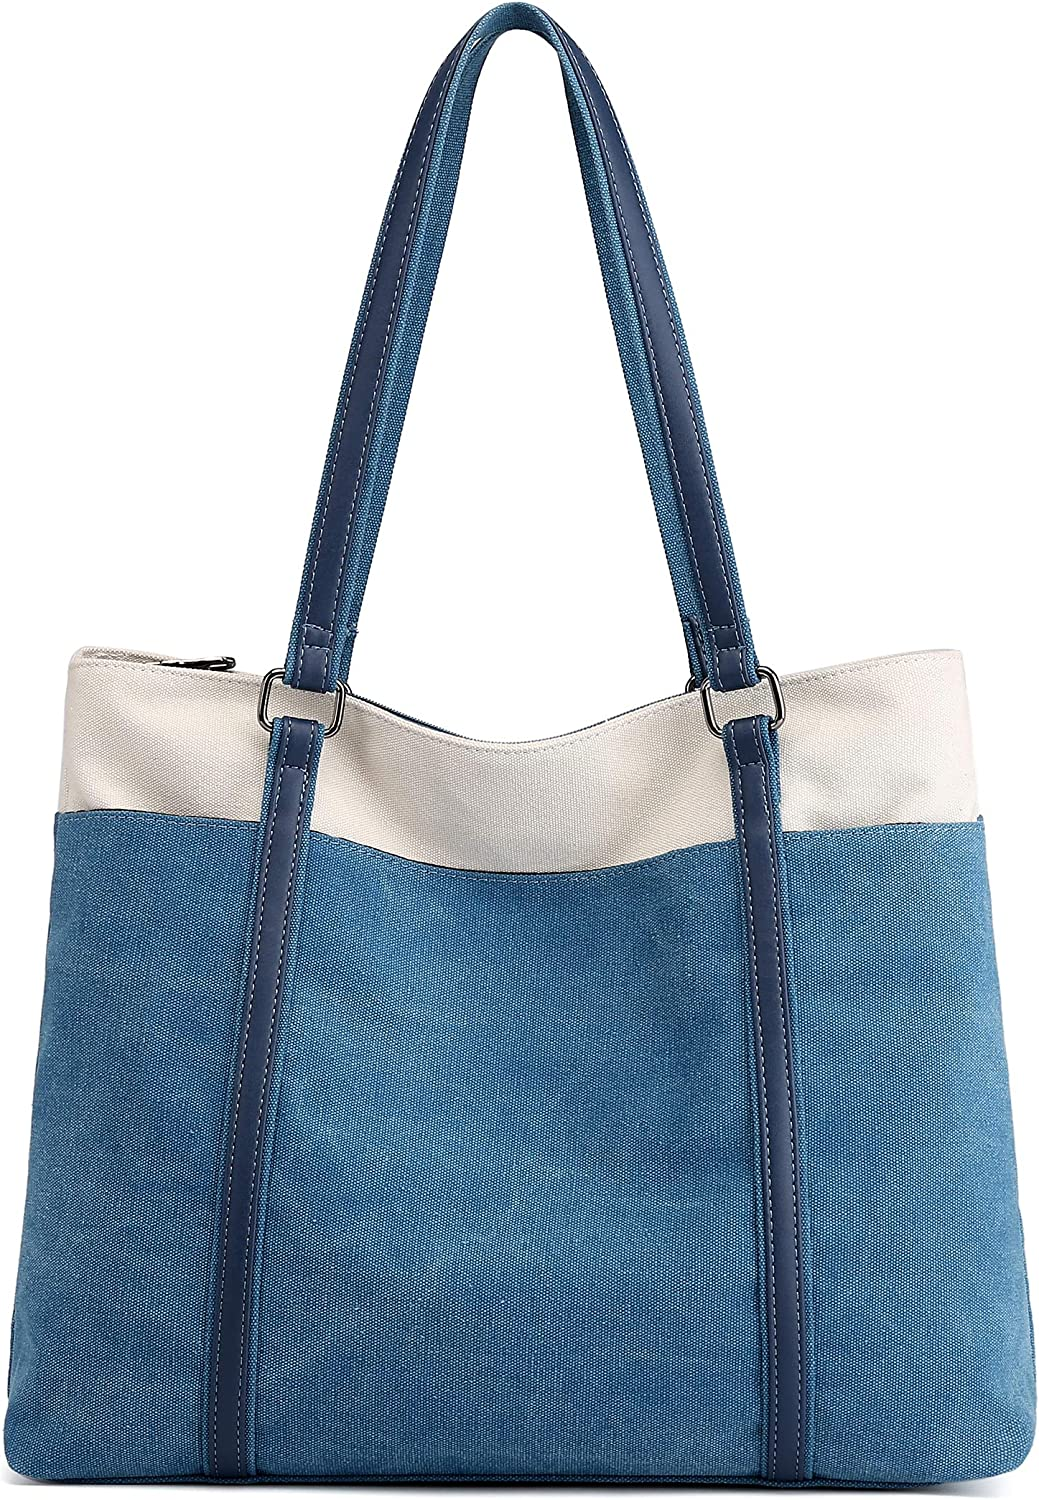 Scioltoo Laptop Tote Bag for Women 15.6 In Canvas Teacher Shoulder Bag With Zipper